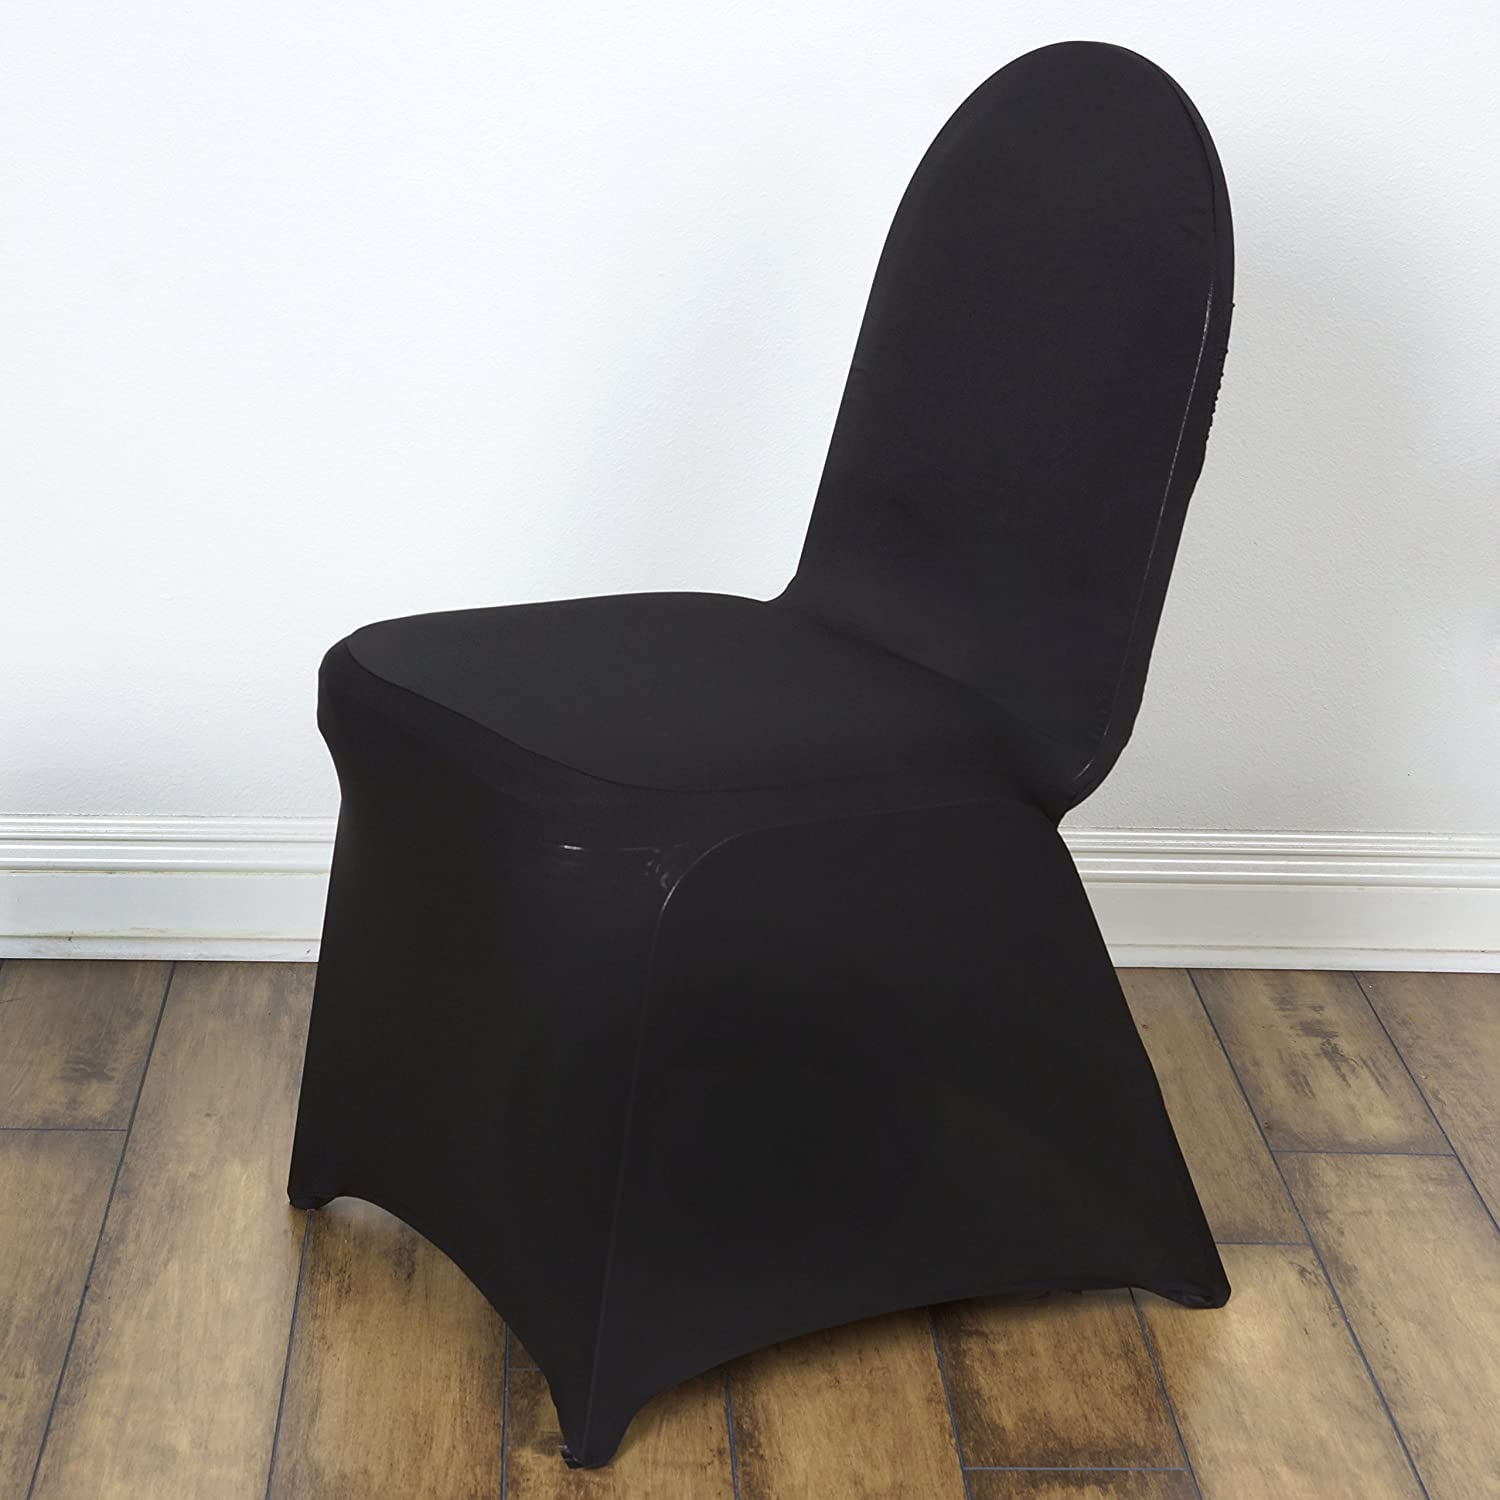 Fitted Chair Covers 8 Feet Fitted Tablecloths Navy Blue Image